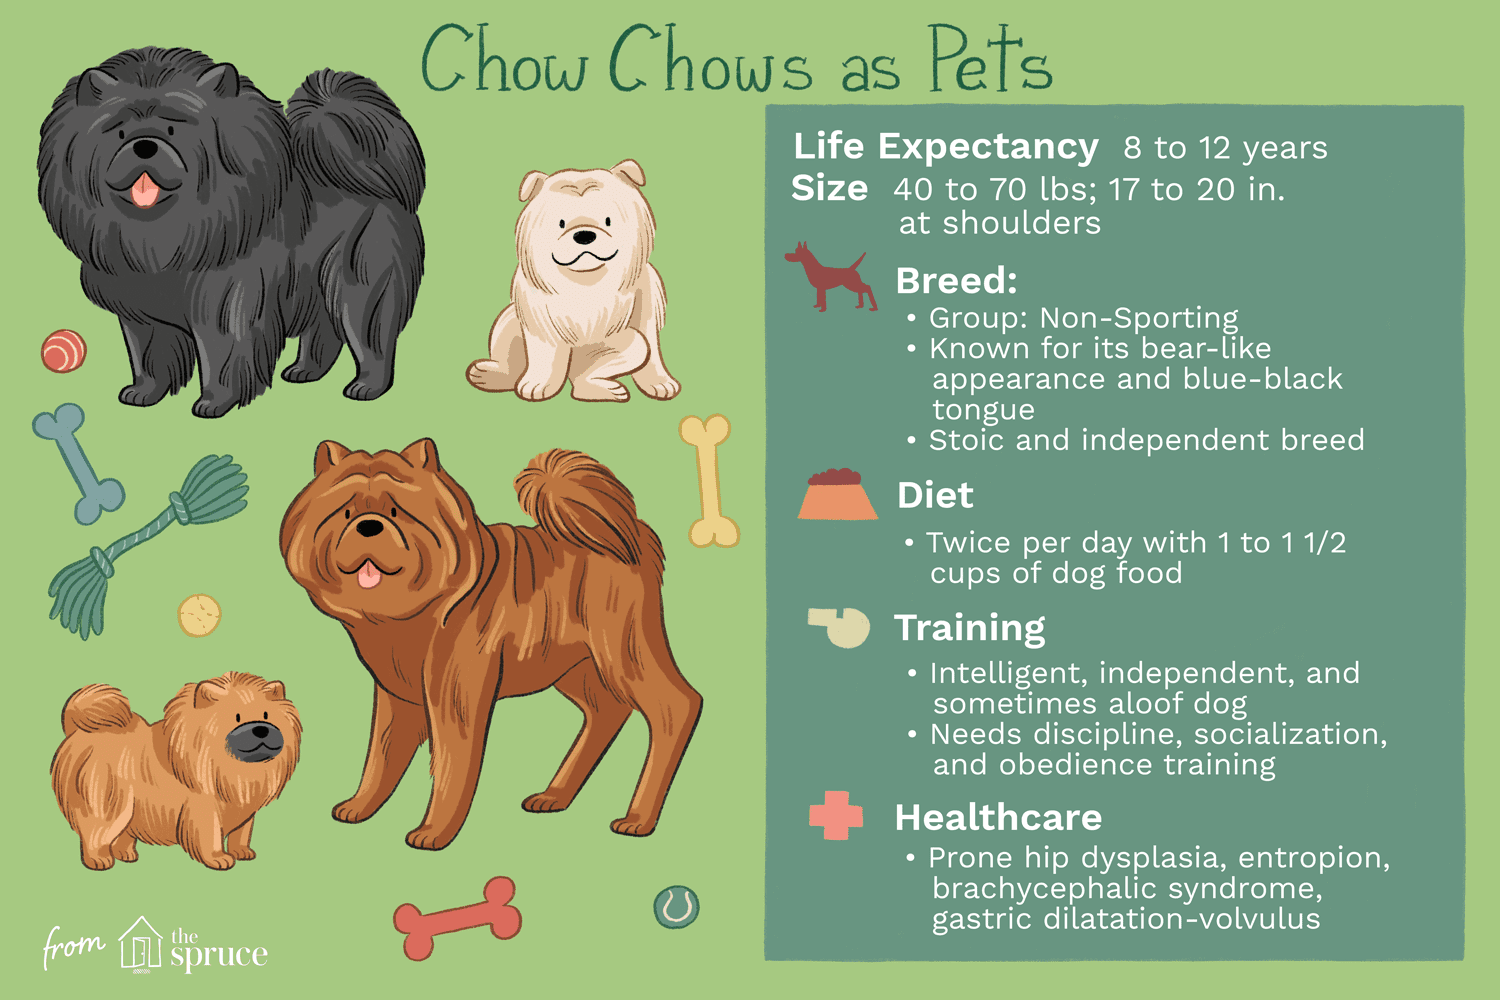 Chow Chow - Full Profile, History, and Care